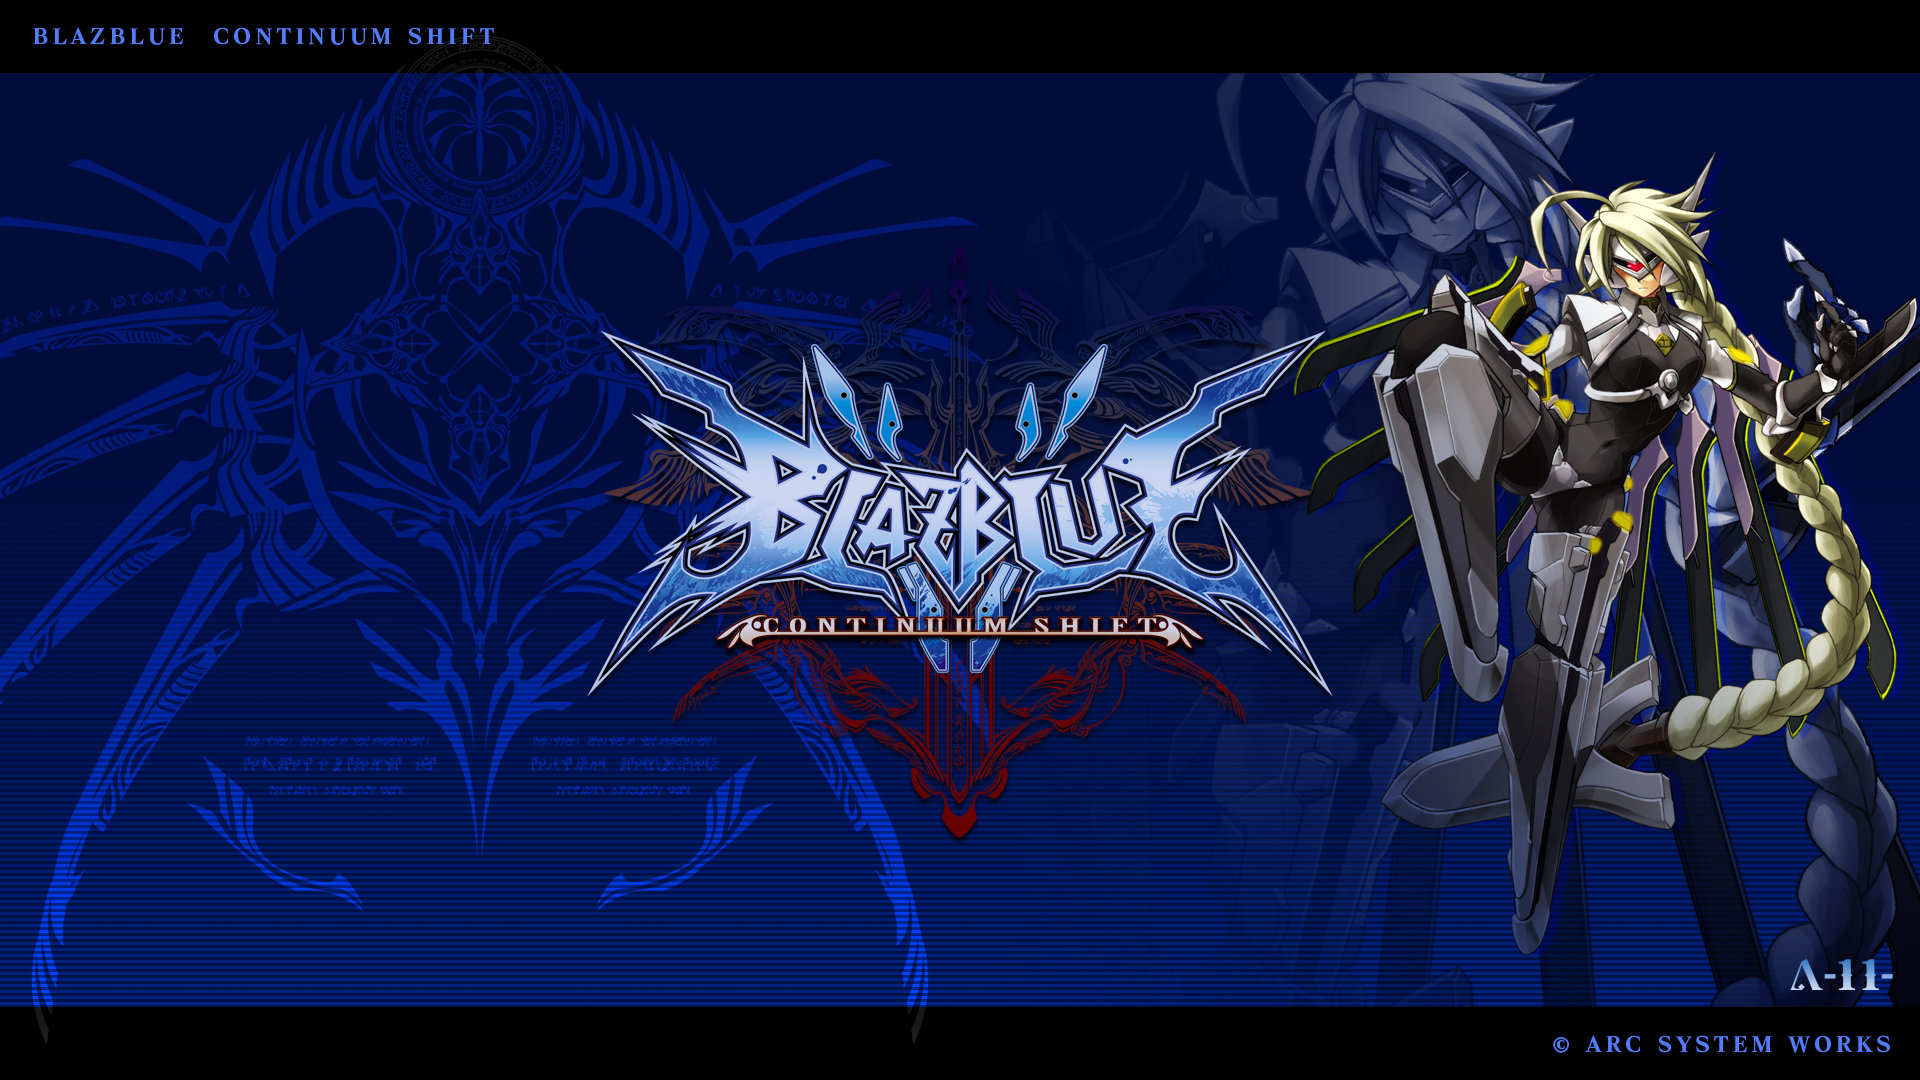 Download full hd 1080p Blazblue computer wallpaper ID:75223 for free